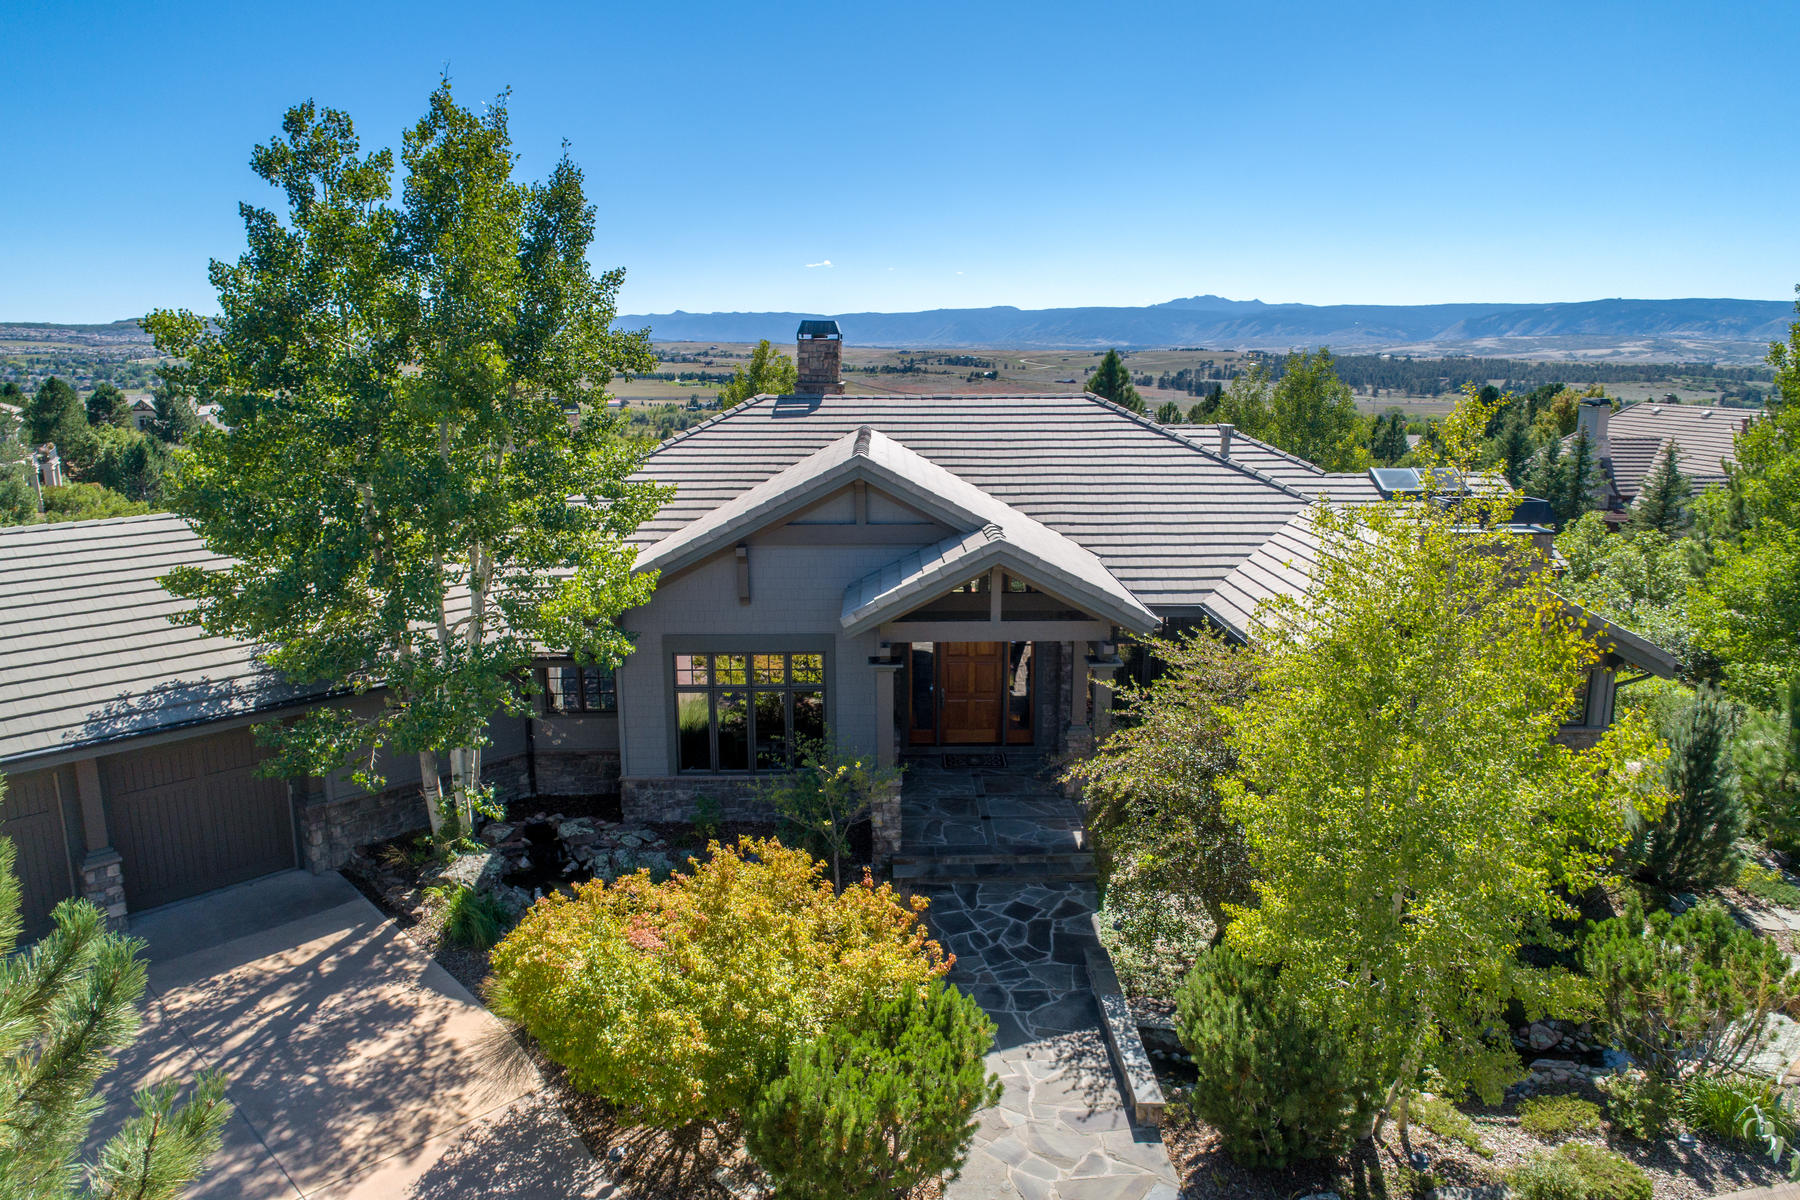 Single Family Home for Active at It's All About The View! 771 International Isle Drive Castle Rock, Colorado 80108 United States